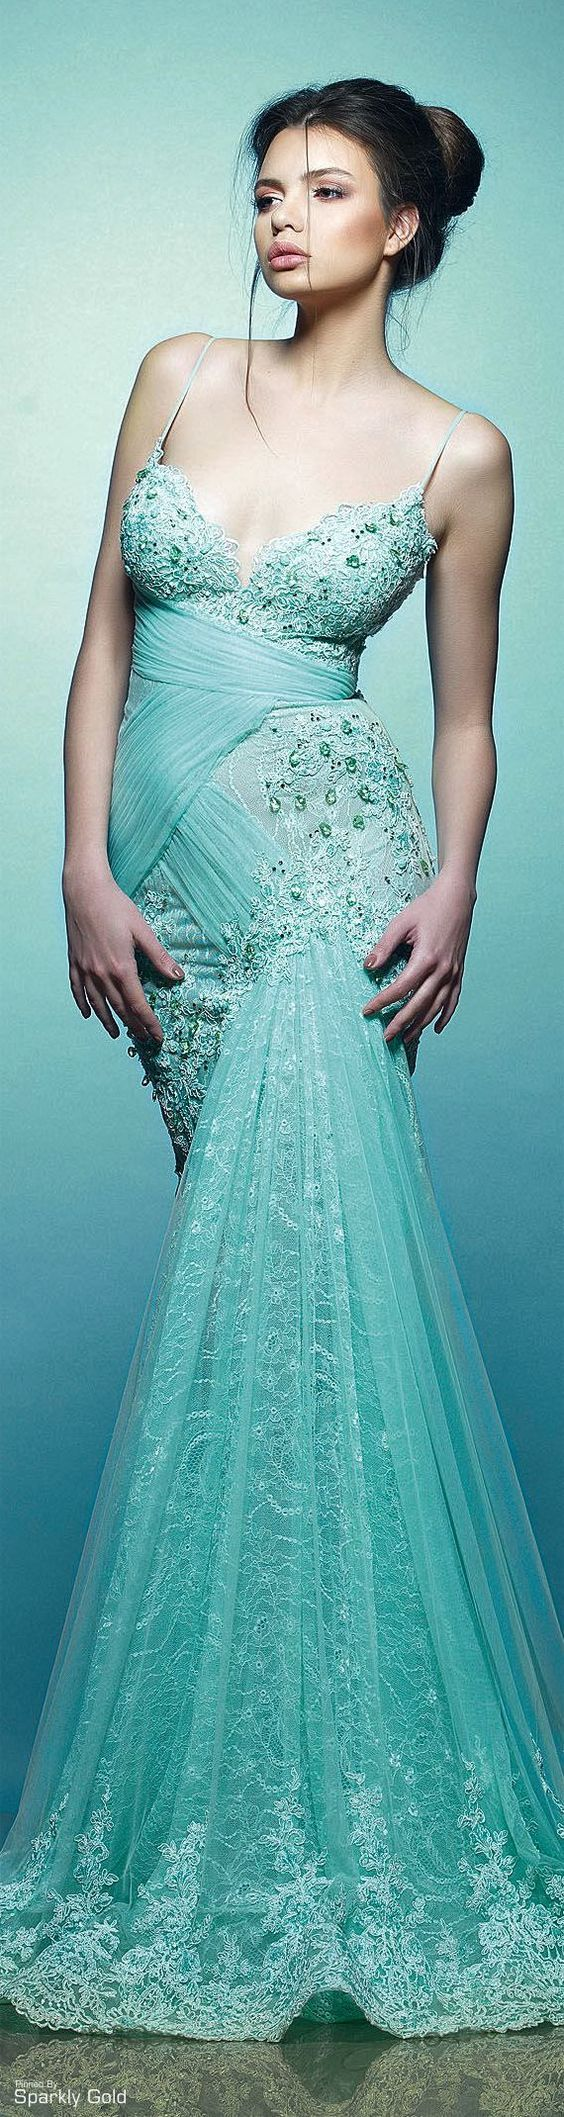 cyan maxi dress Saiid Kobeisy S/S 2015: @roressclothes closet ideas women fashion outfit clothing style